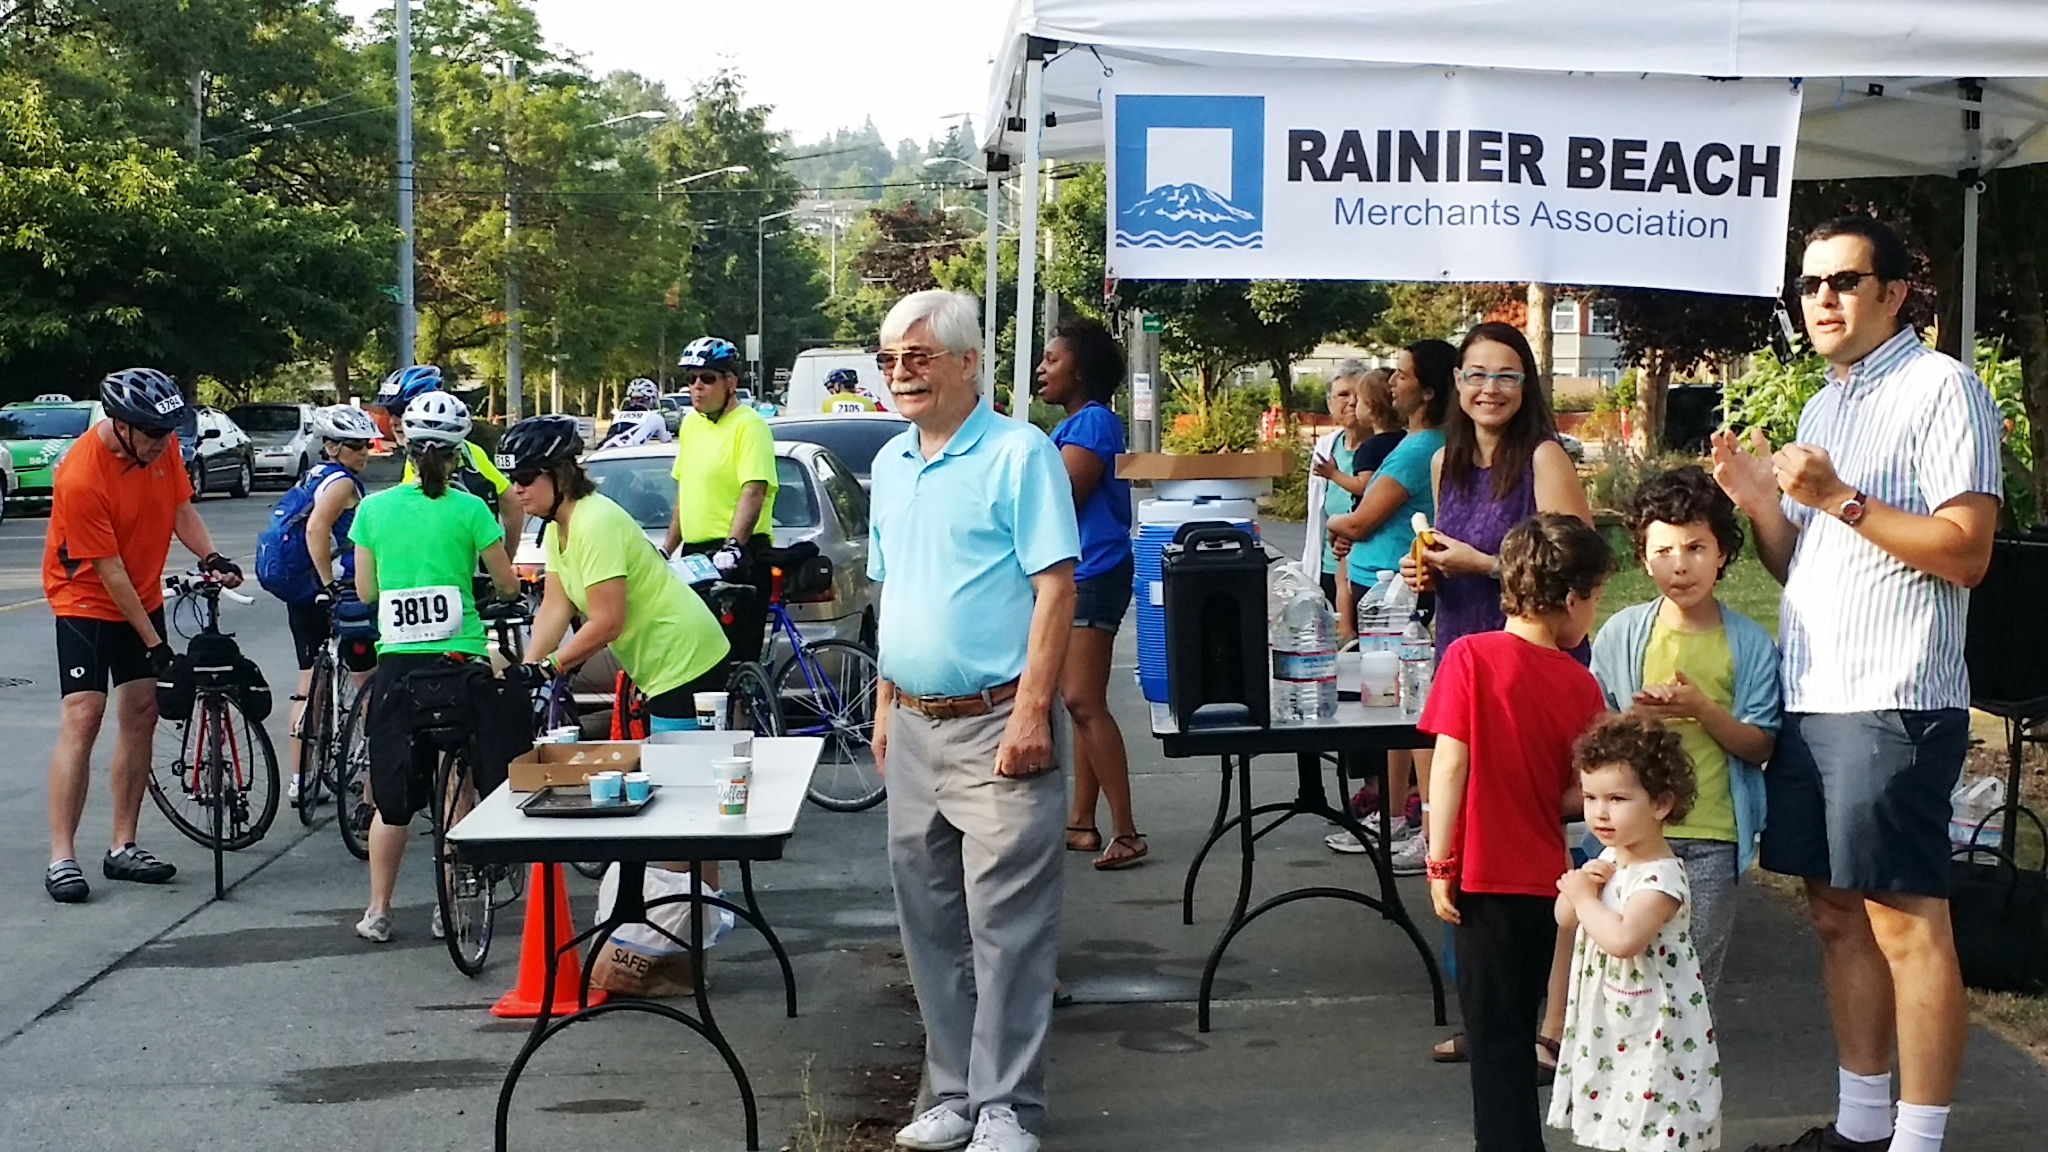 Rainier Beach Merchants Association